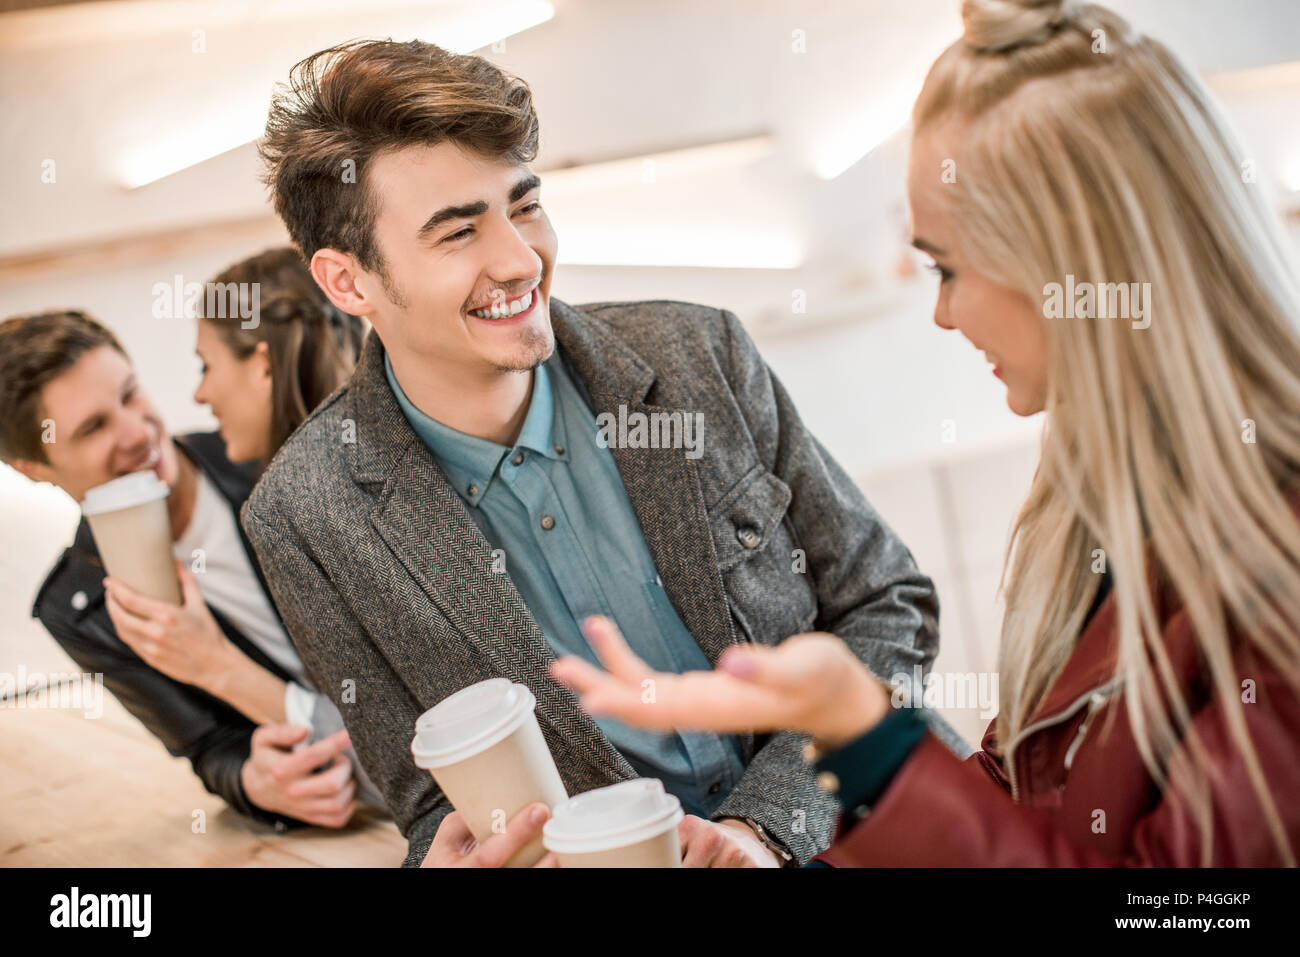 Two heterosexual couples talking at the wooden bar counter - Stock Image